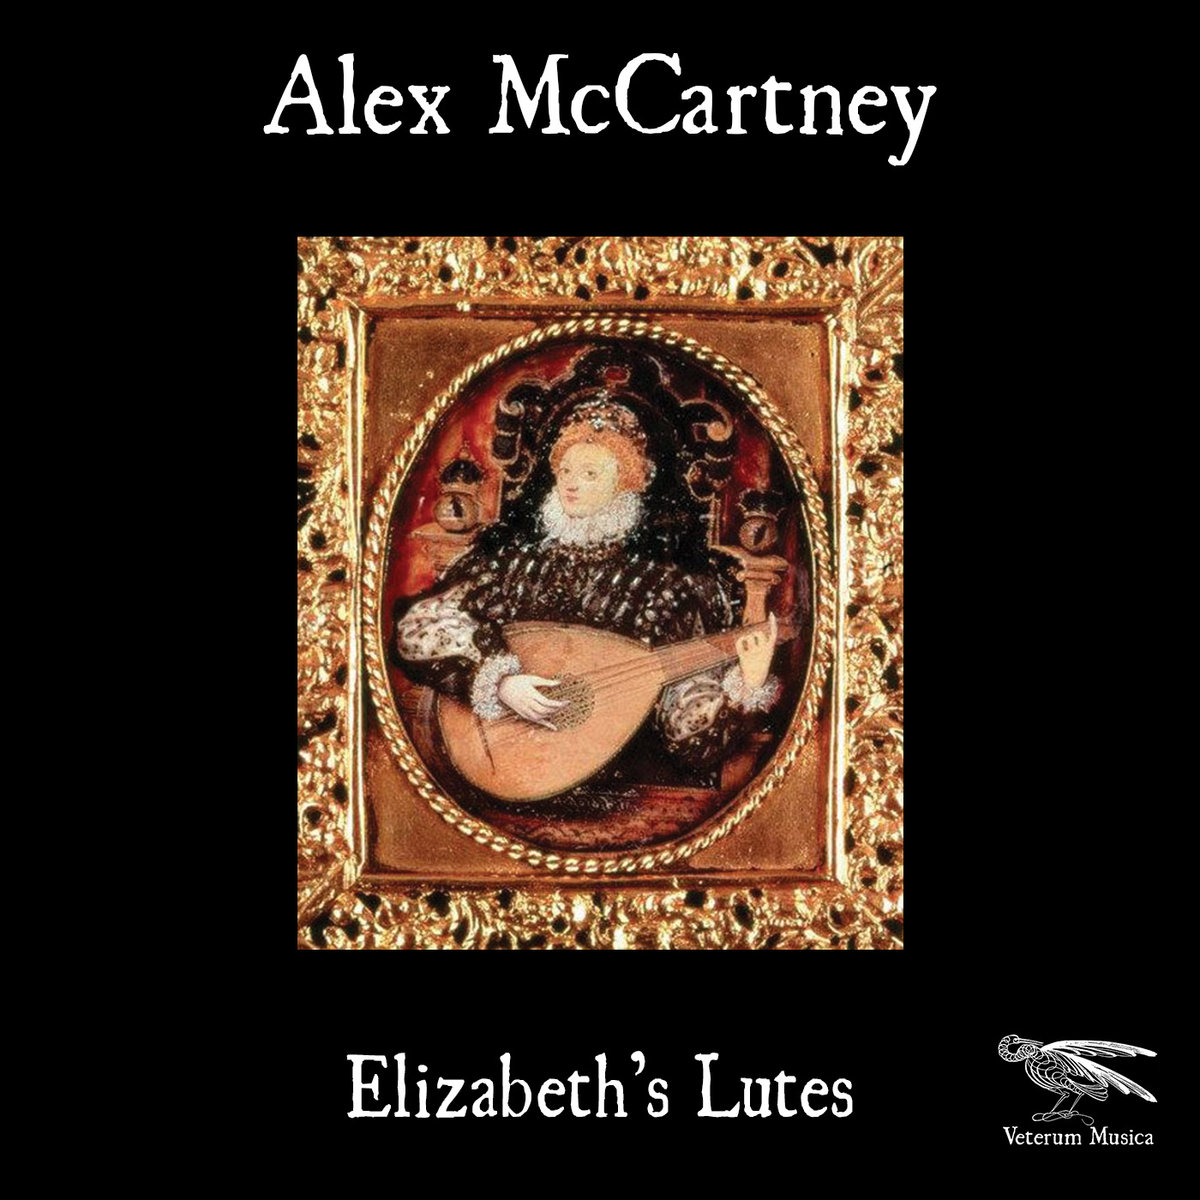 Cover art from Elizabeth's Lutes by Alex McCartney